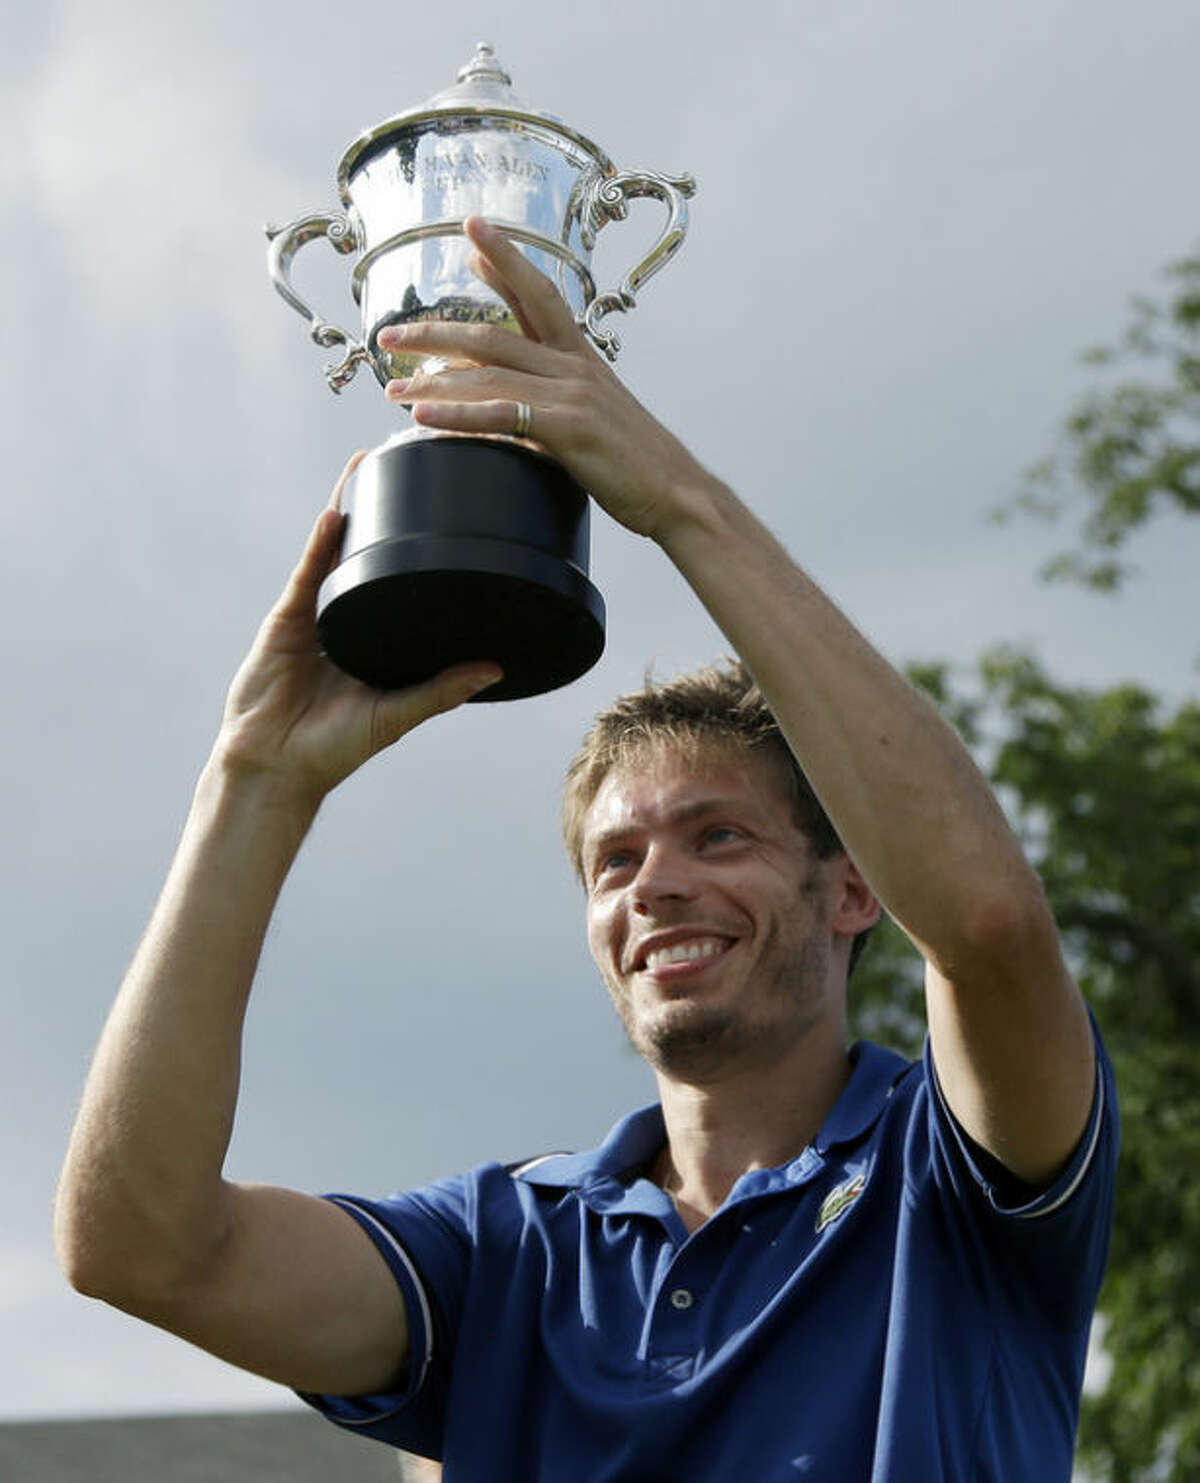 Nicolas Mahut, of France, hoists the Van Alen Cup after defeating Lleyton Hewitt, of Australia, in the finals of the Hall of Fame Tennis Championships in Newport, R.I. Sunday, July 14, 2013. Mahut won 5-7, 7-5, 6-3. (AP Photo/Elise Amendola)